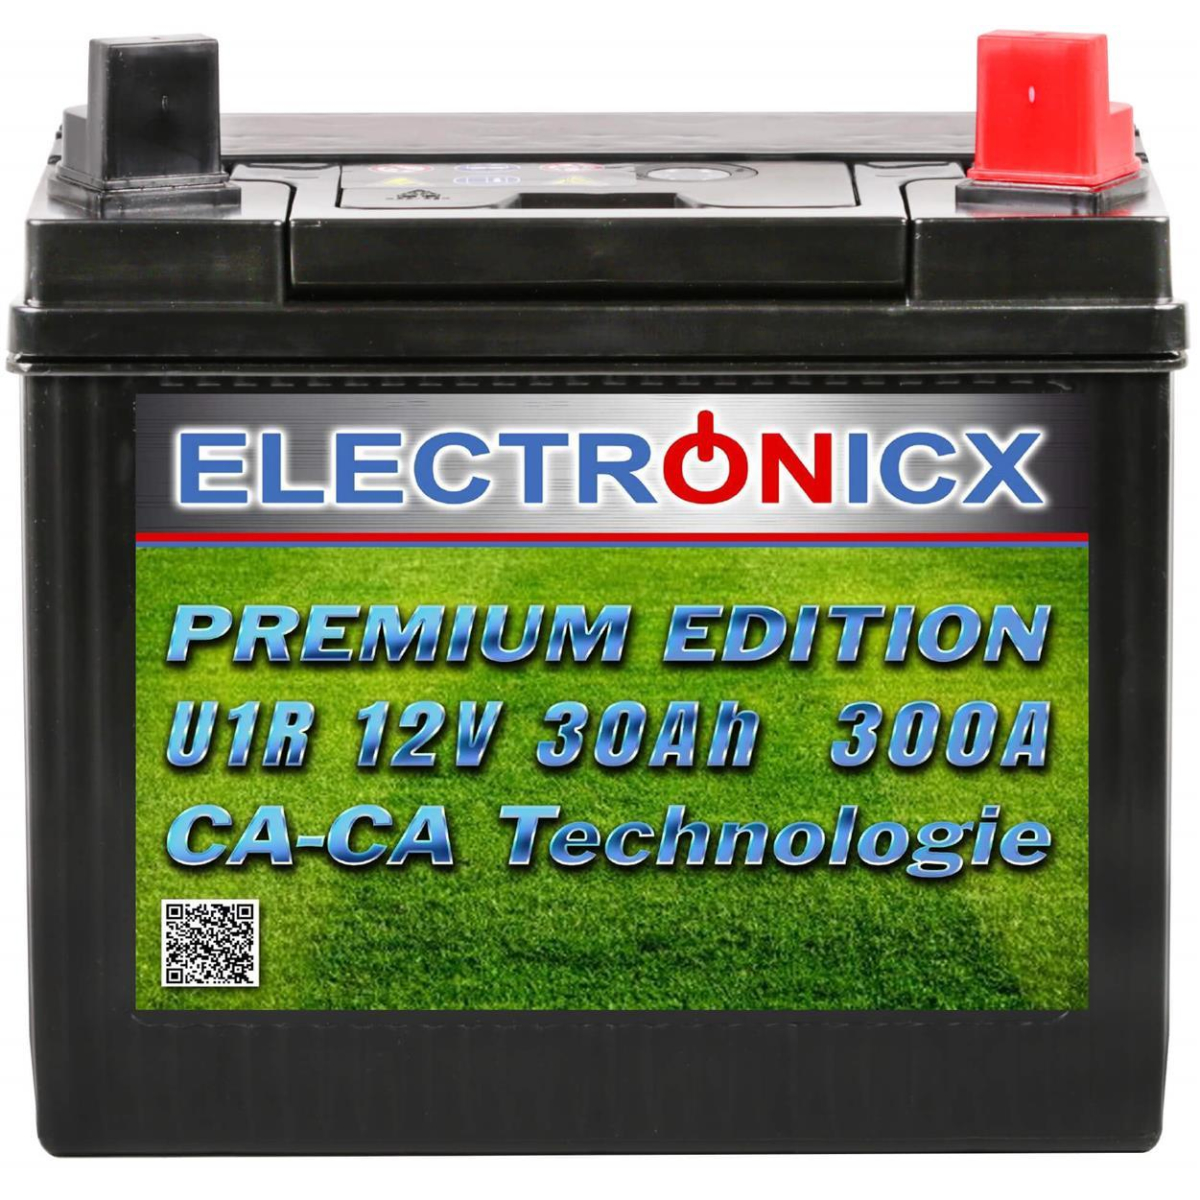 Electronicx U1R 30Ah 300A Green Power ride-on lawnmowers and garden equipment